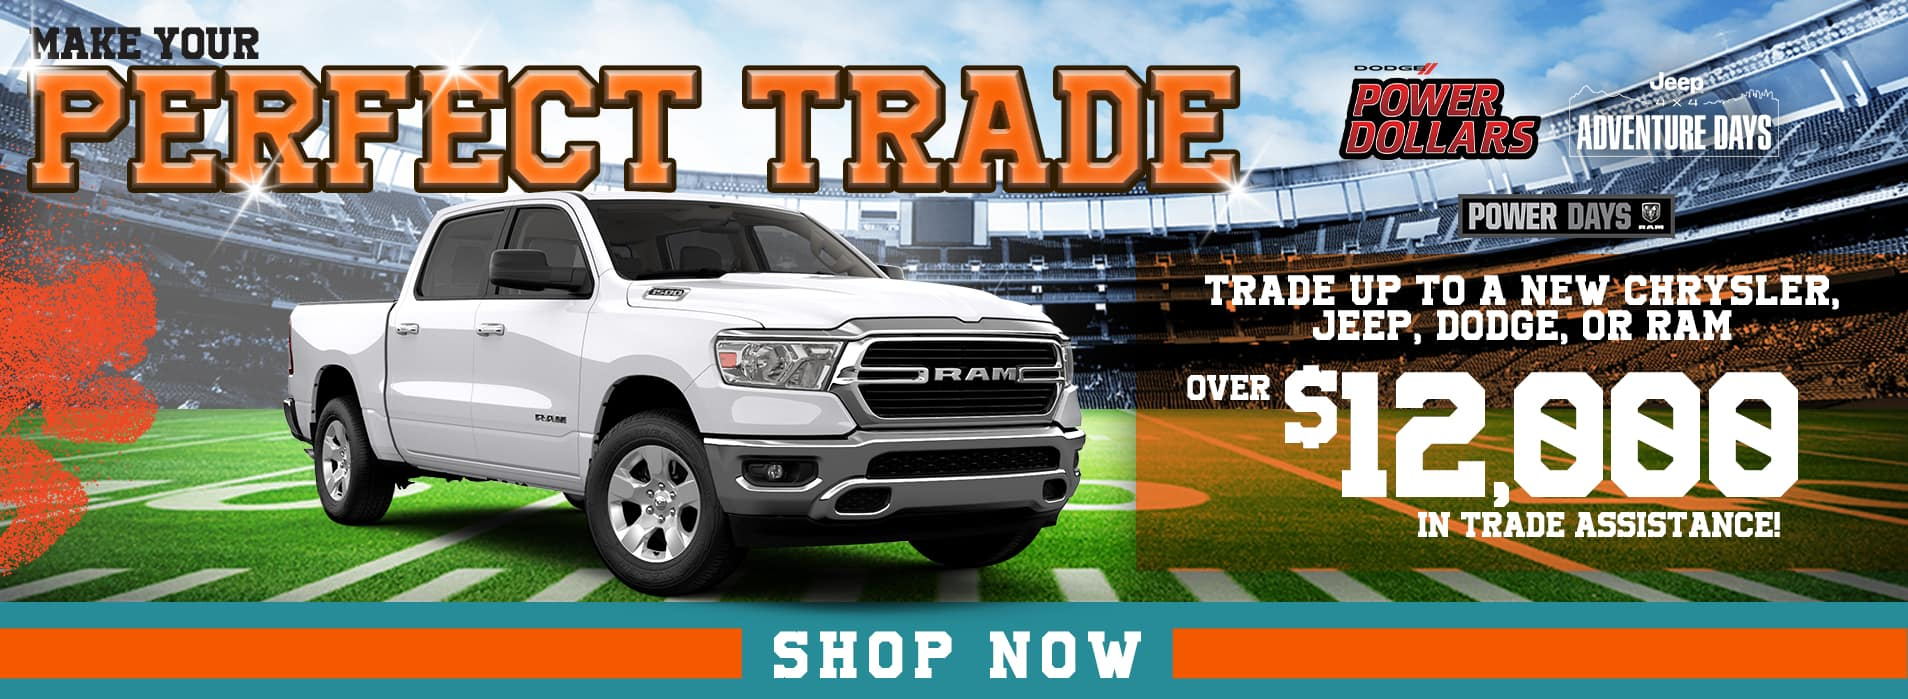 Get over $12,000 in trade assistance at Spitzer CDJR in Homestead